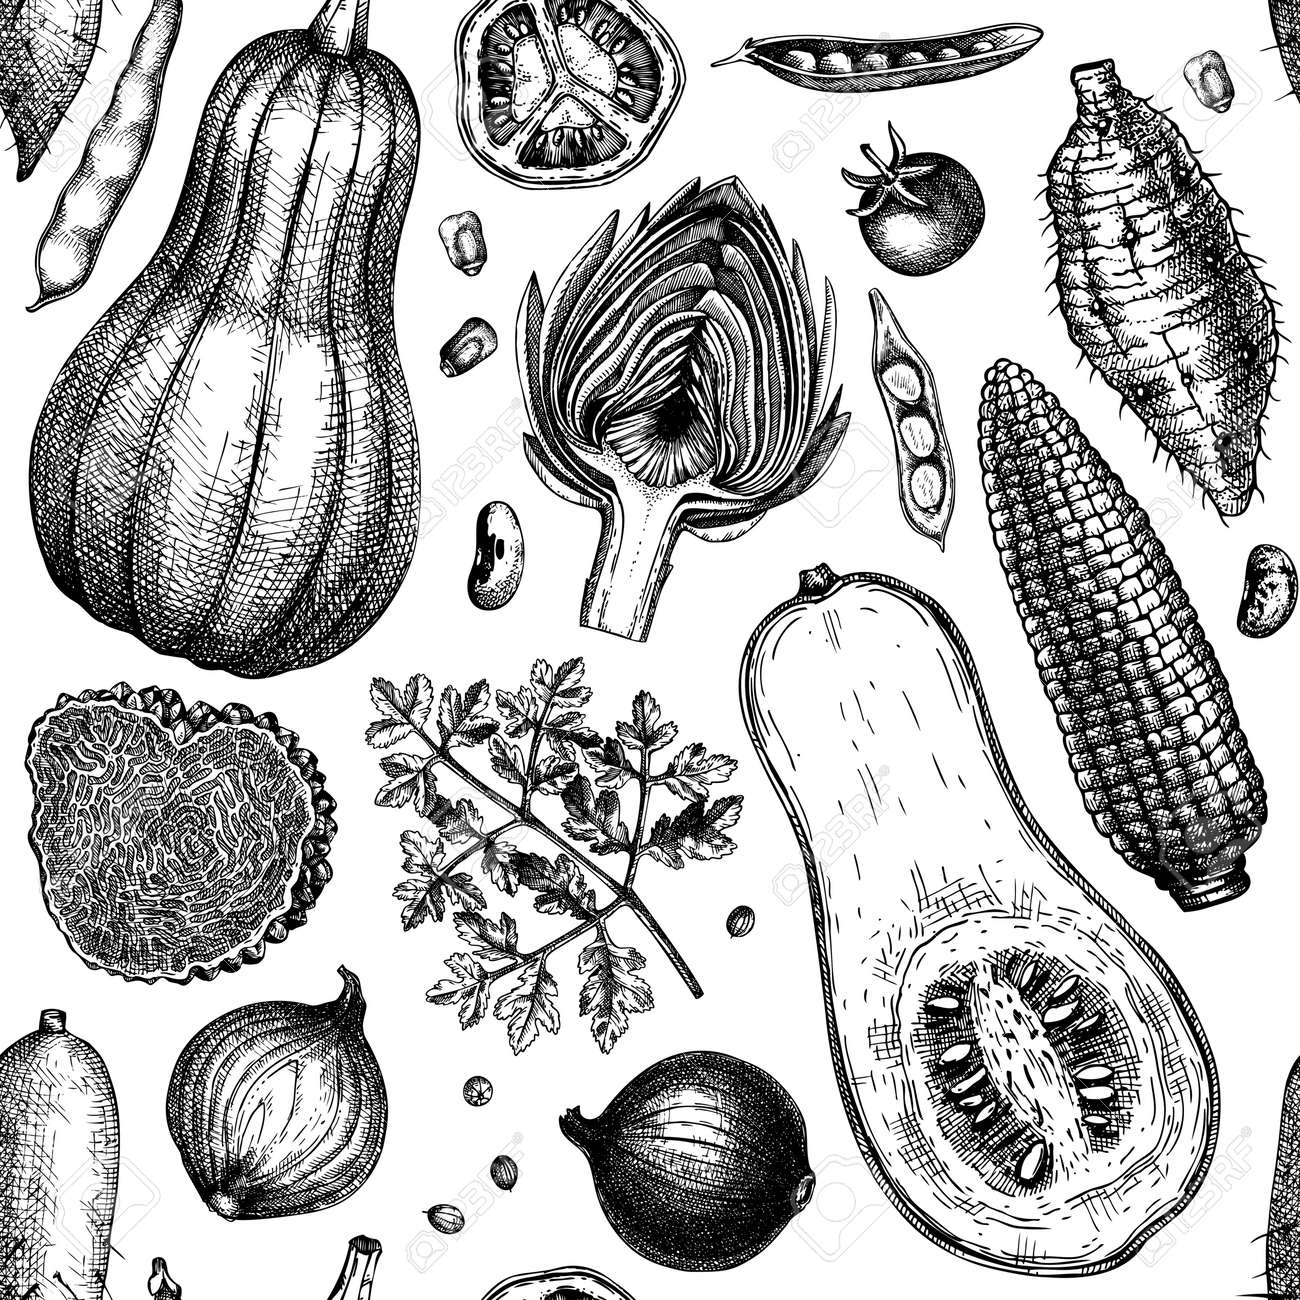 Hand-sketched vegetables, mushrooms, herbs seamless pattern. Healthy food ingredients background. Perfect for wrapping paper, fabrics, wed banners, branding, ads. - 170259580